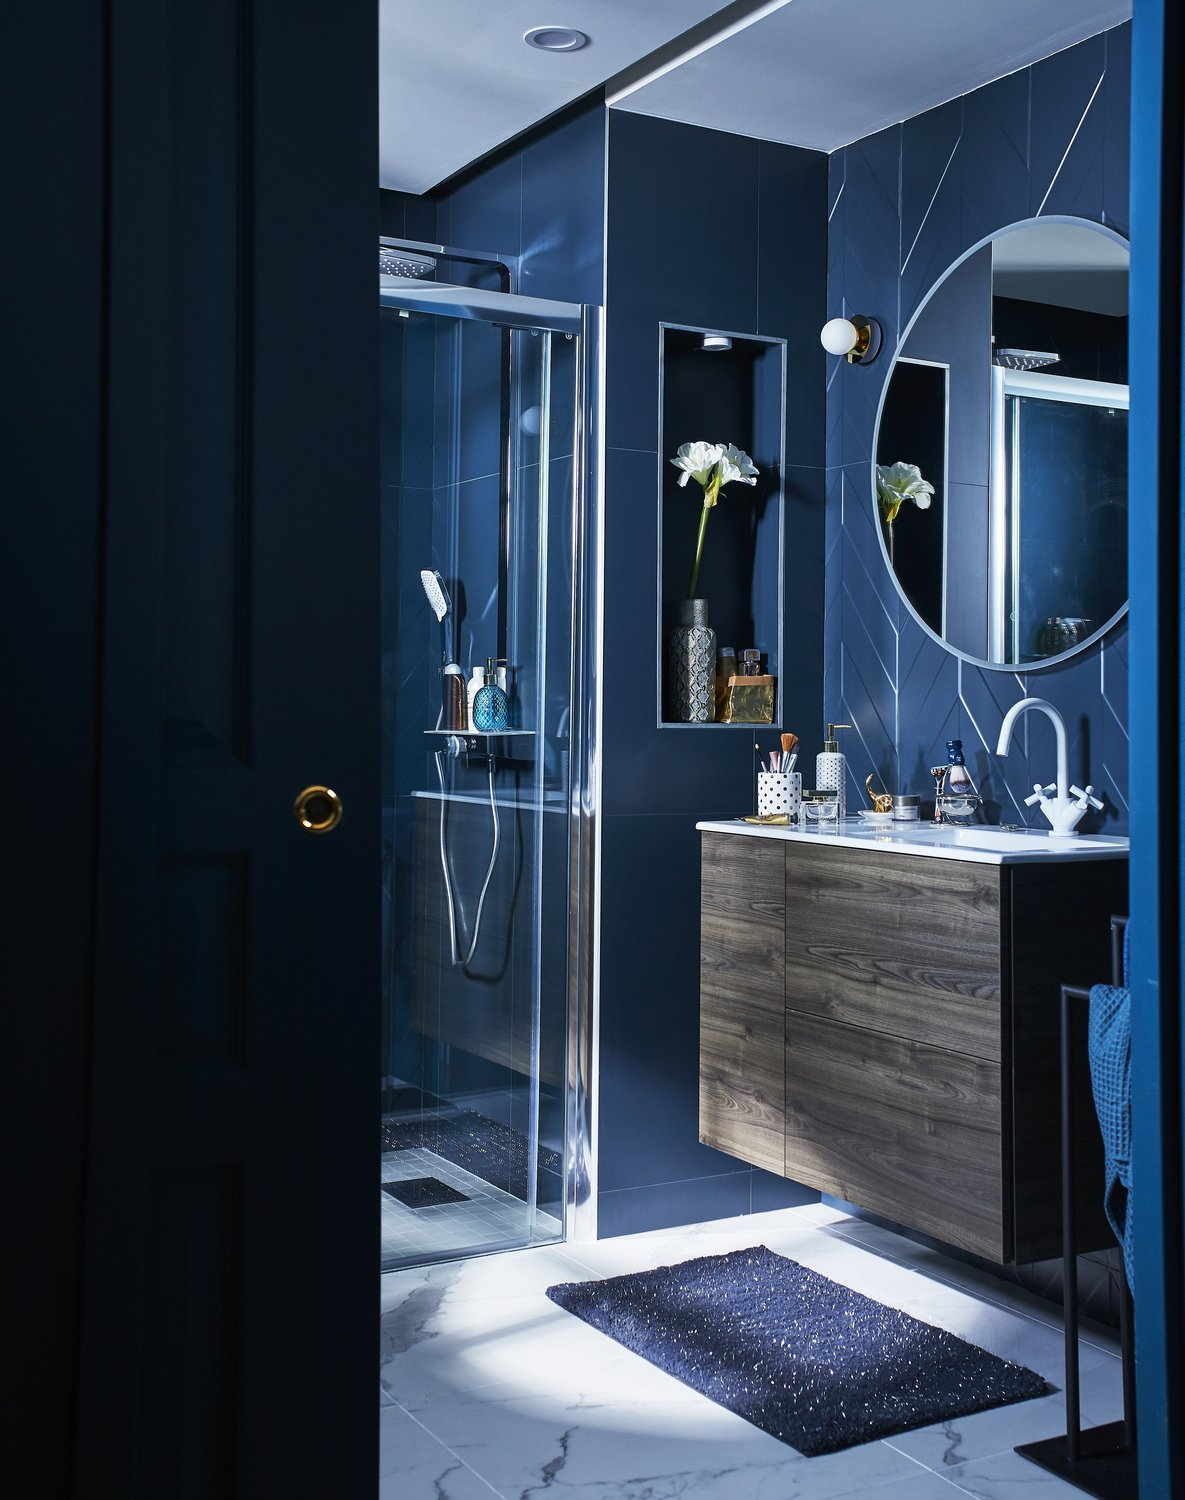 influences art d co dans la salle de bains leroy merlin. Black Bedroom Furniture Sets. Home Design Ideas